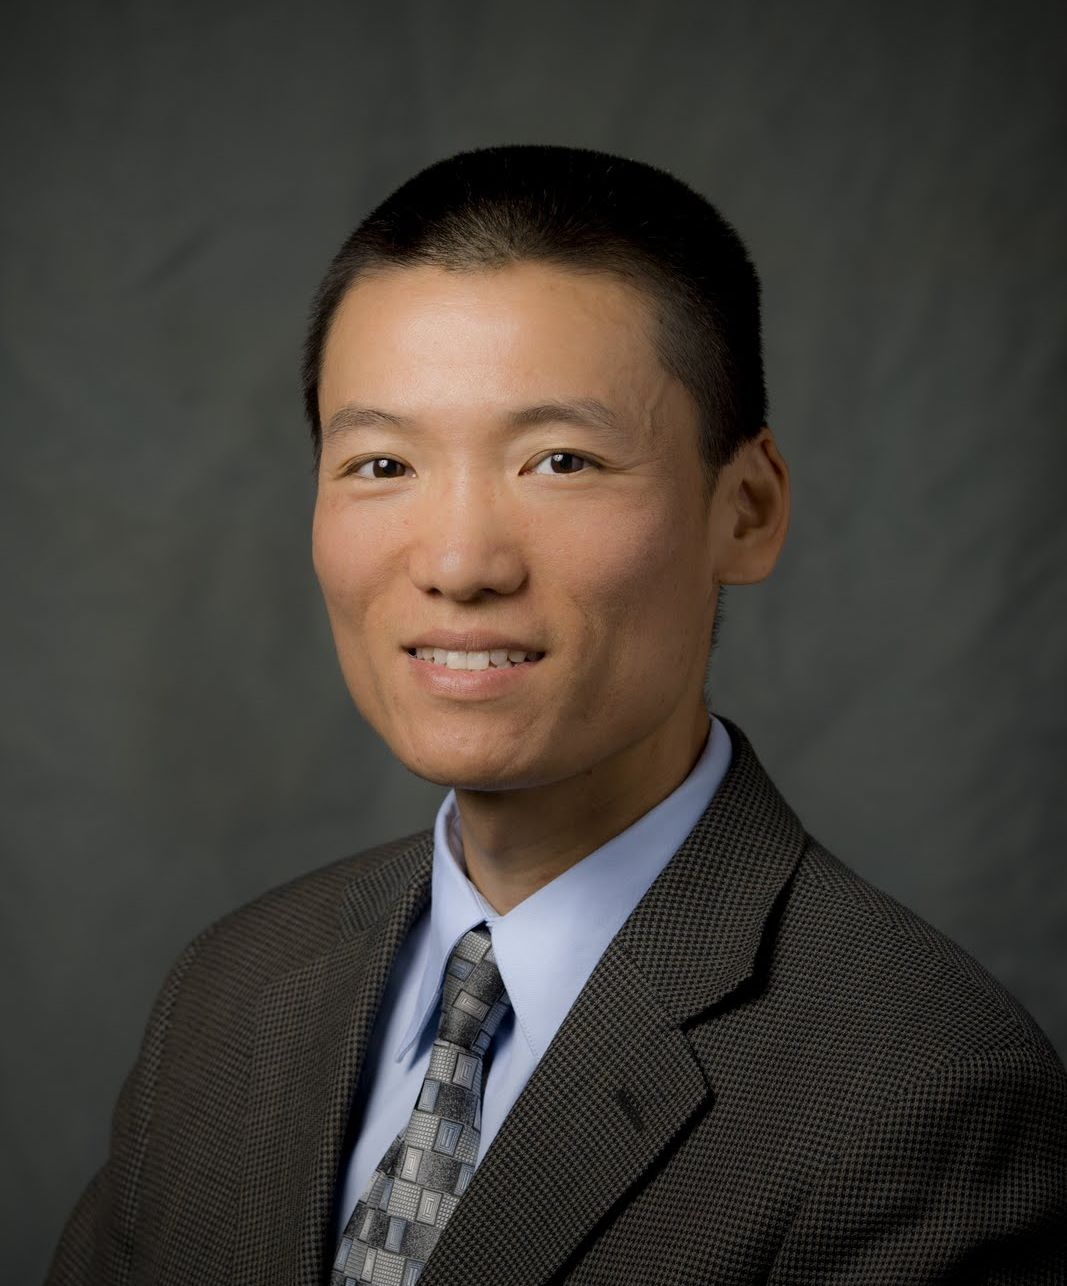 Liang Cheng, associate professor, computer science and engineering, Lehigh University